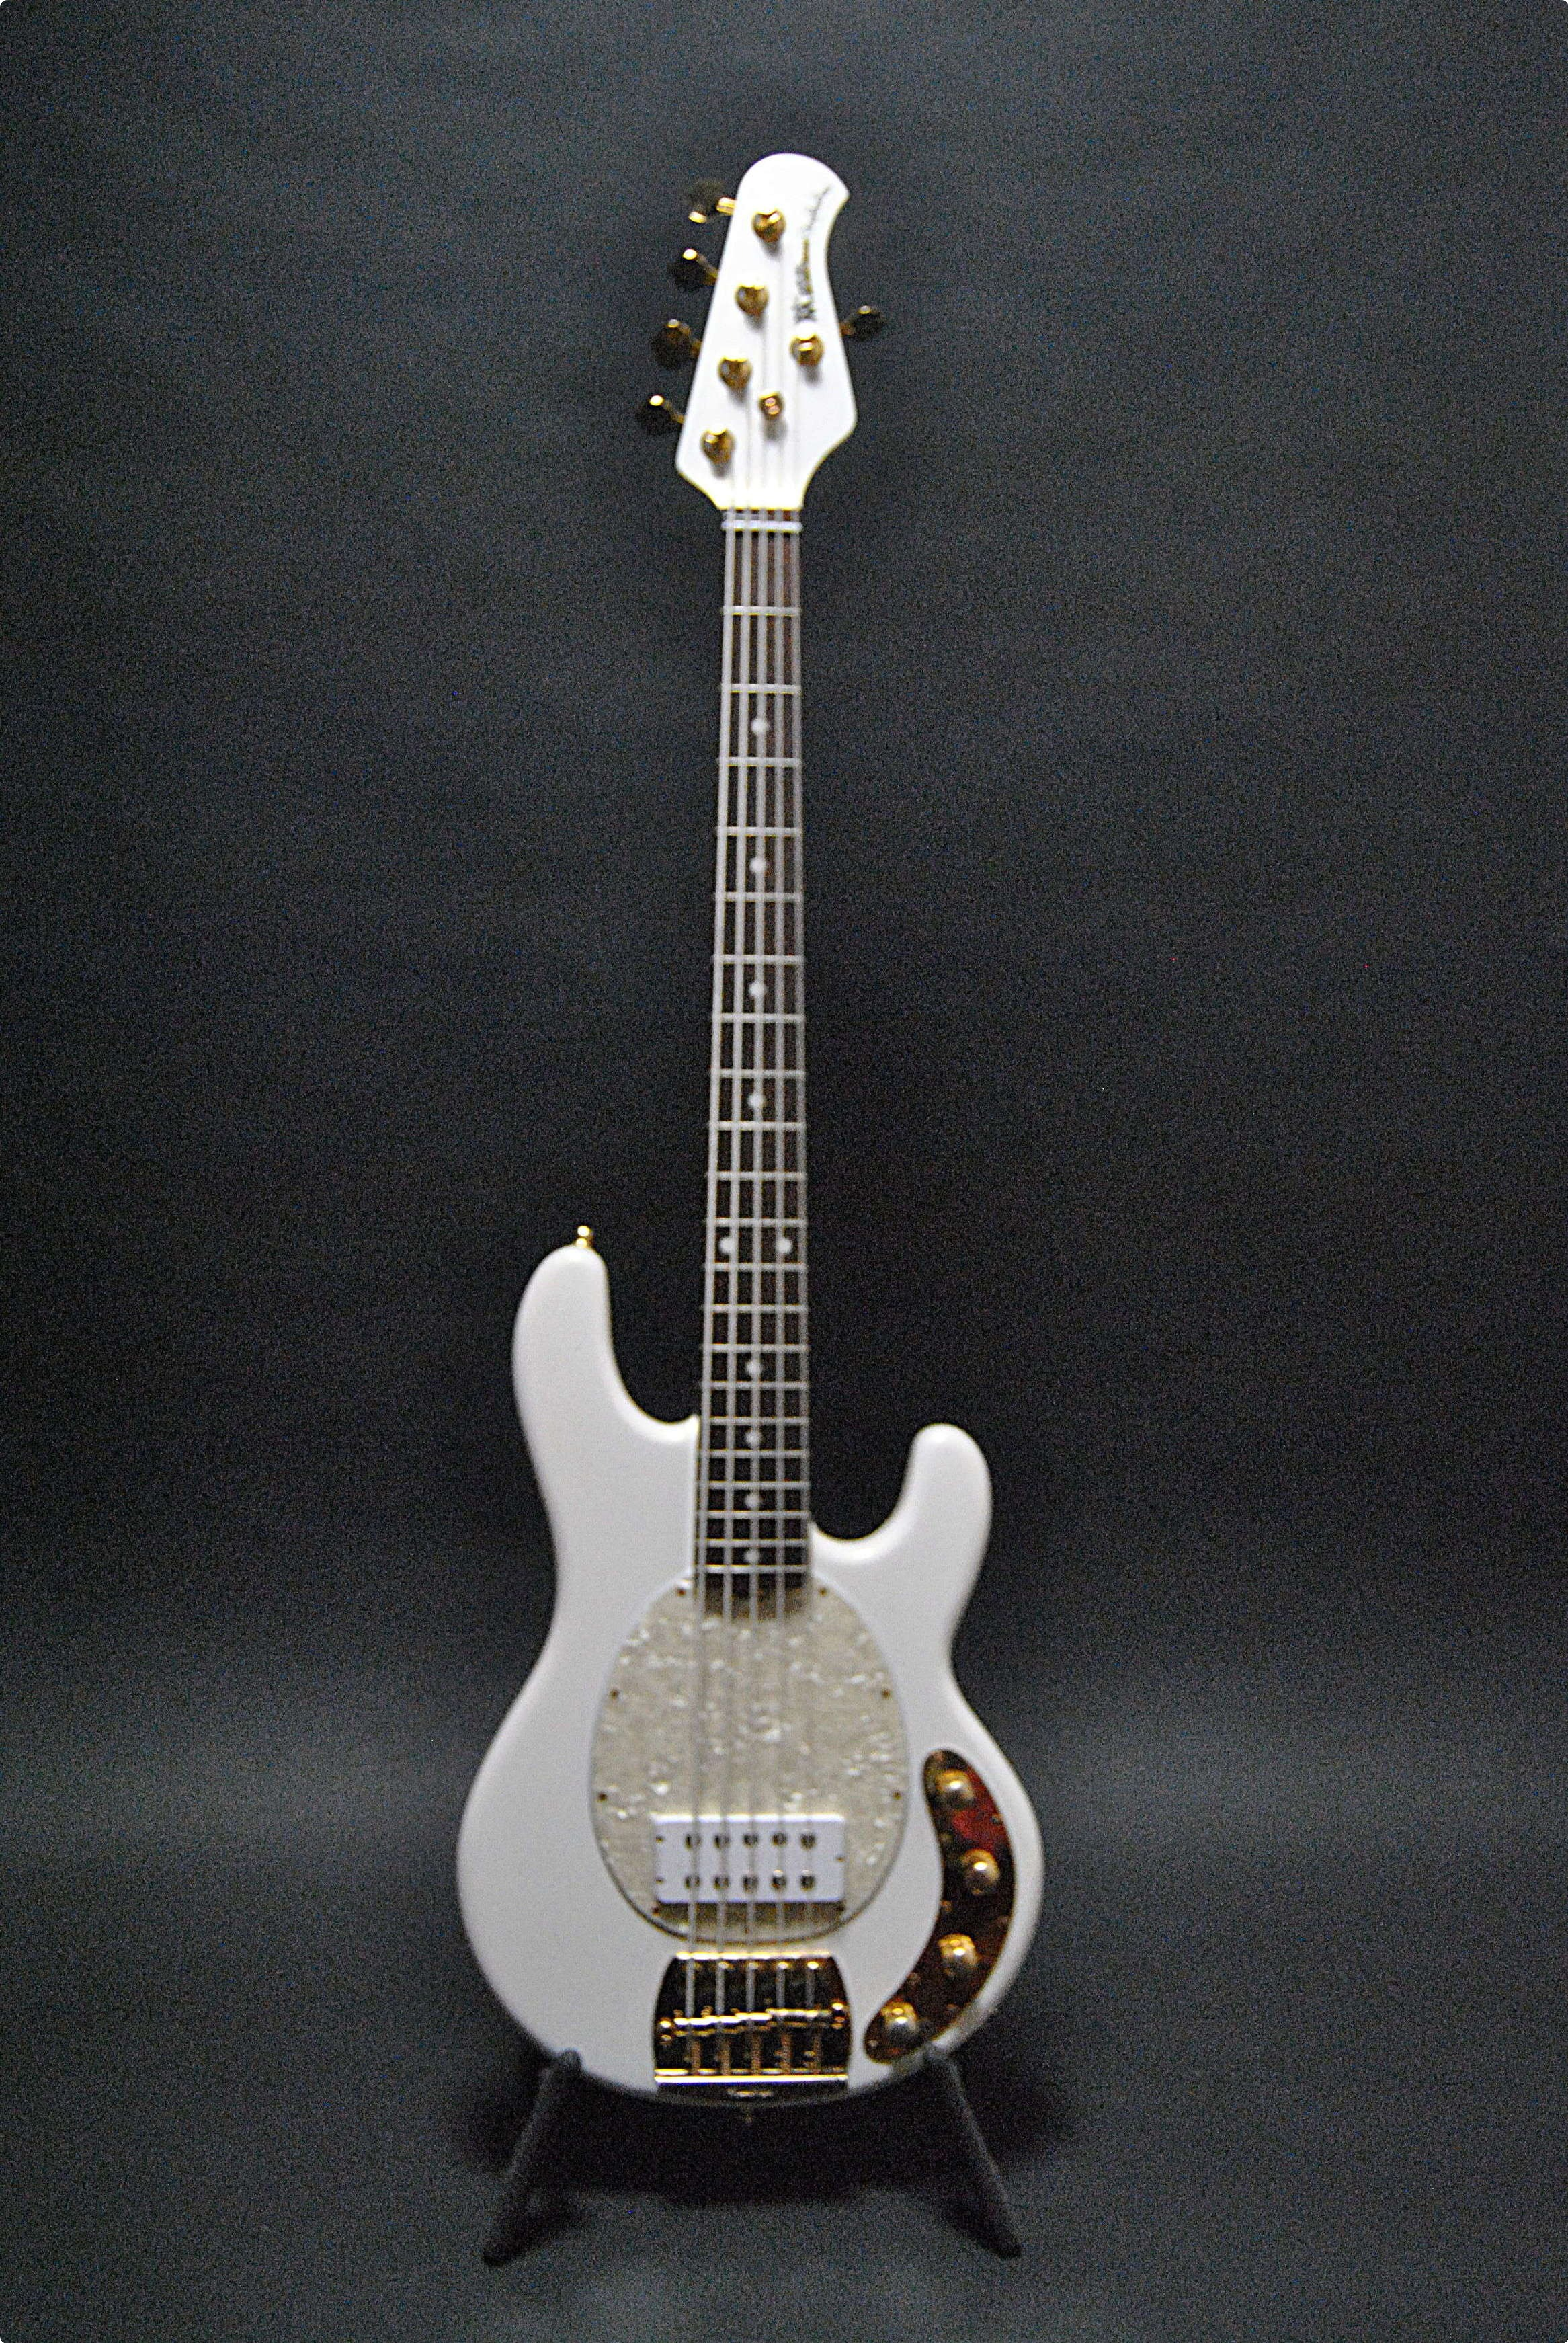 ernie ball music man stingray 5 classic 2012 glided white bass for sale musical trades. Black Bedroom Furniture Sets. Home Design Ideas